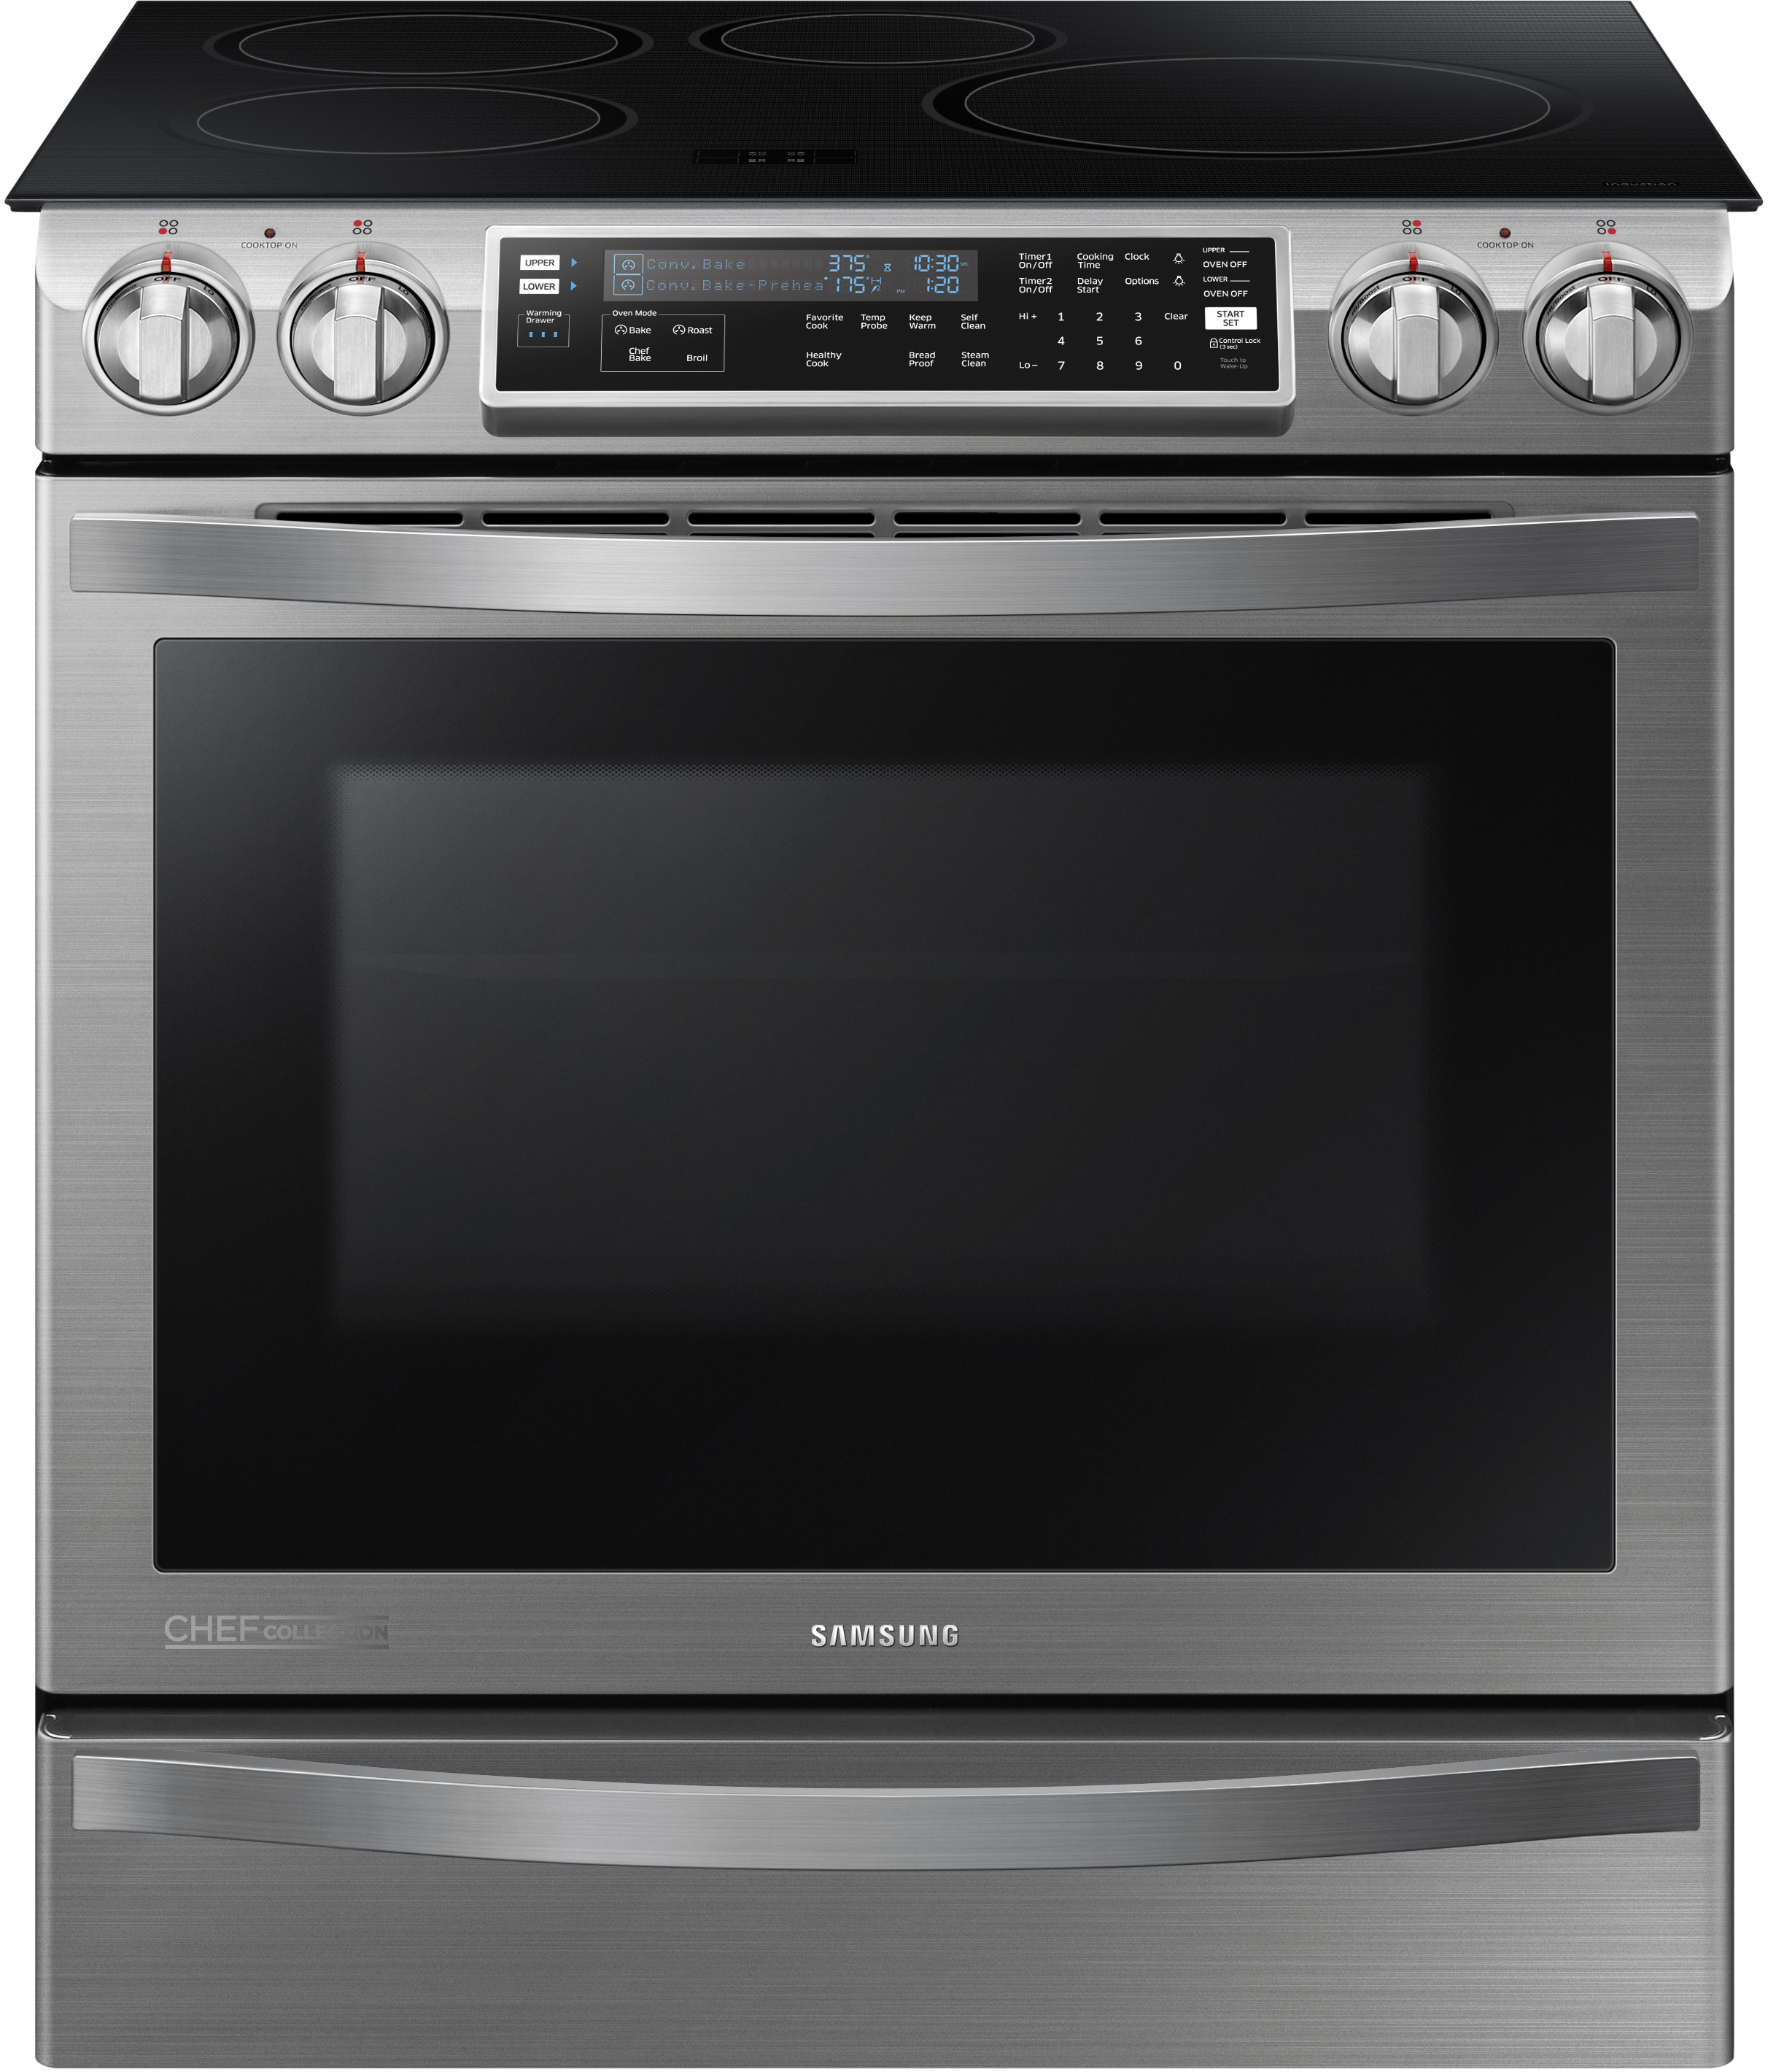 Samsung Ne58h9970ws 30 Inch Slide In Induction Range With